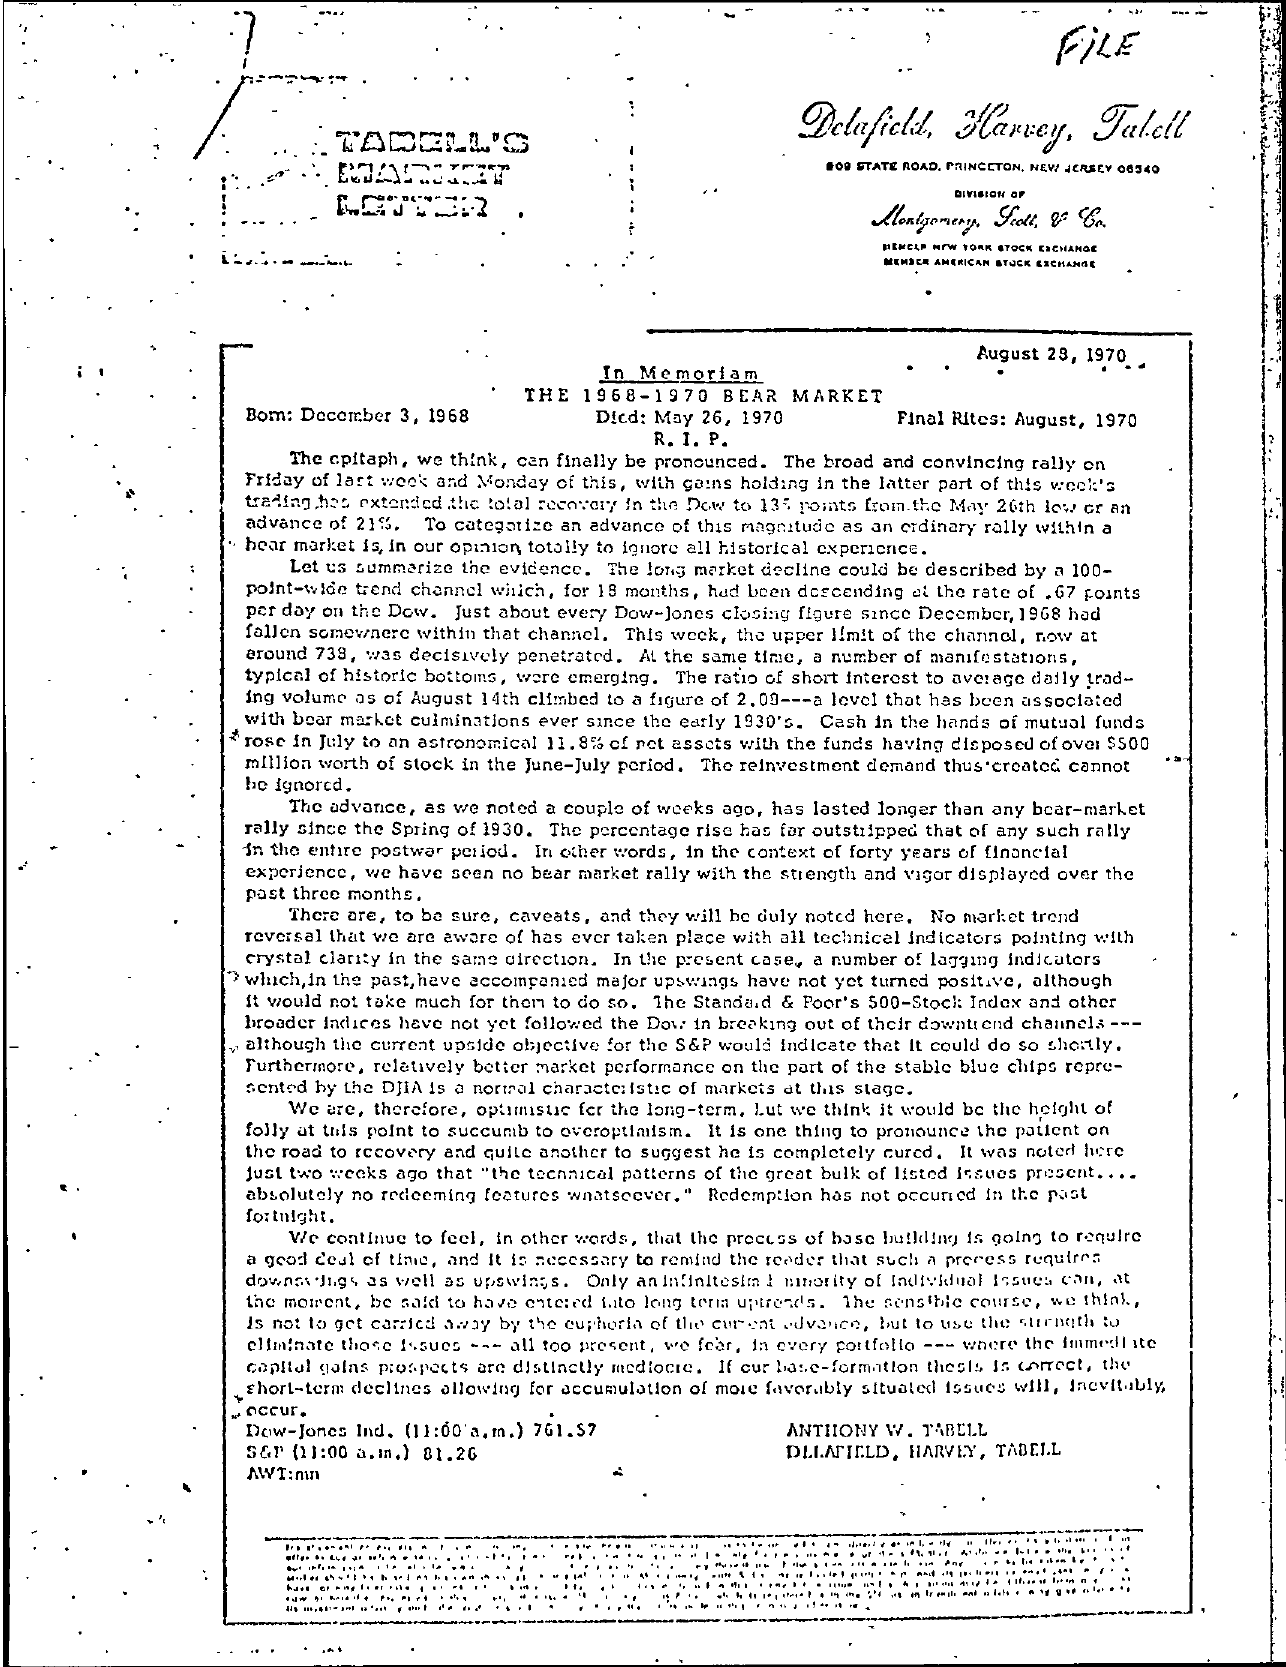 Tabell's Market Letter - August 28, 1970